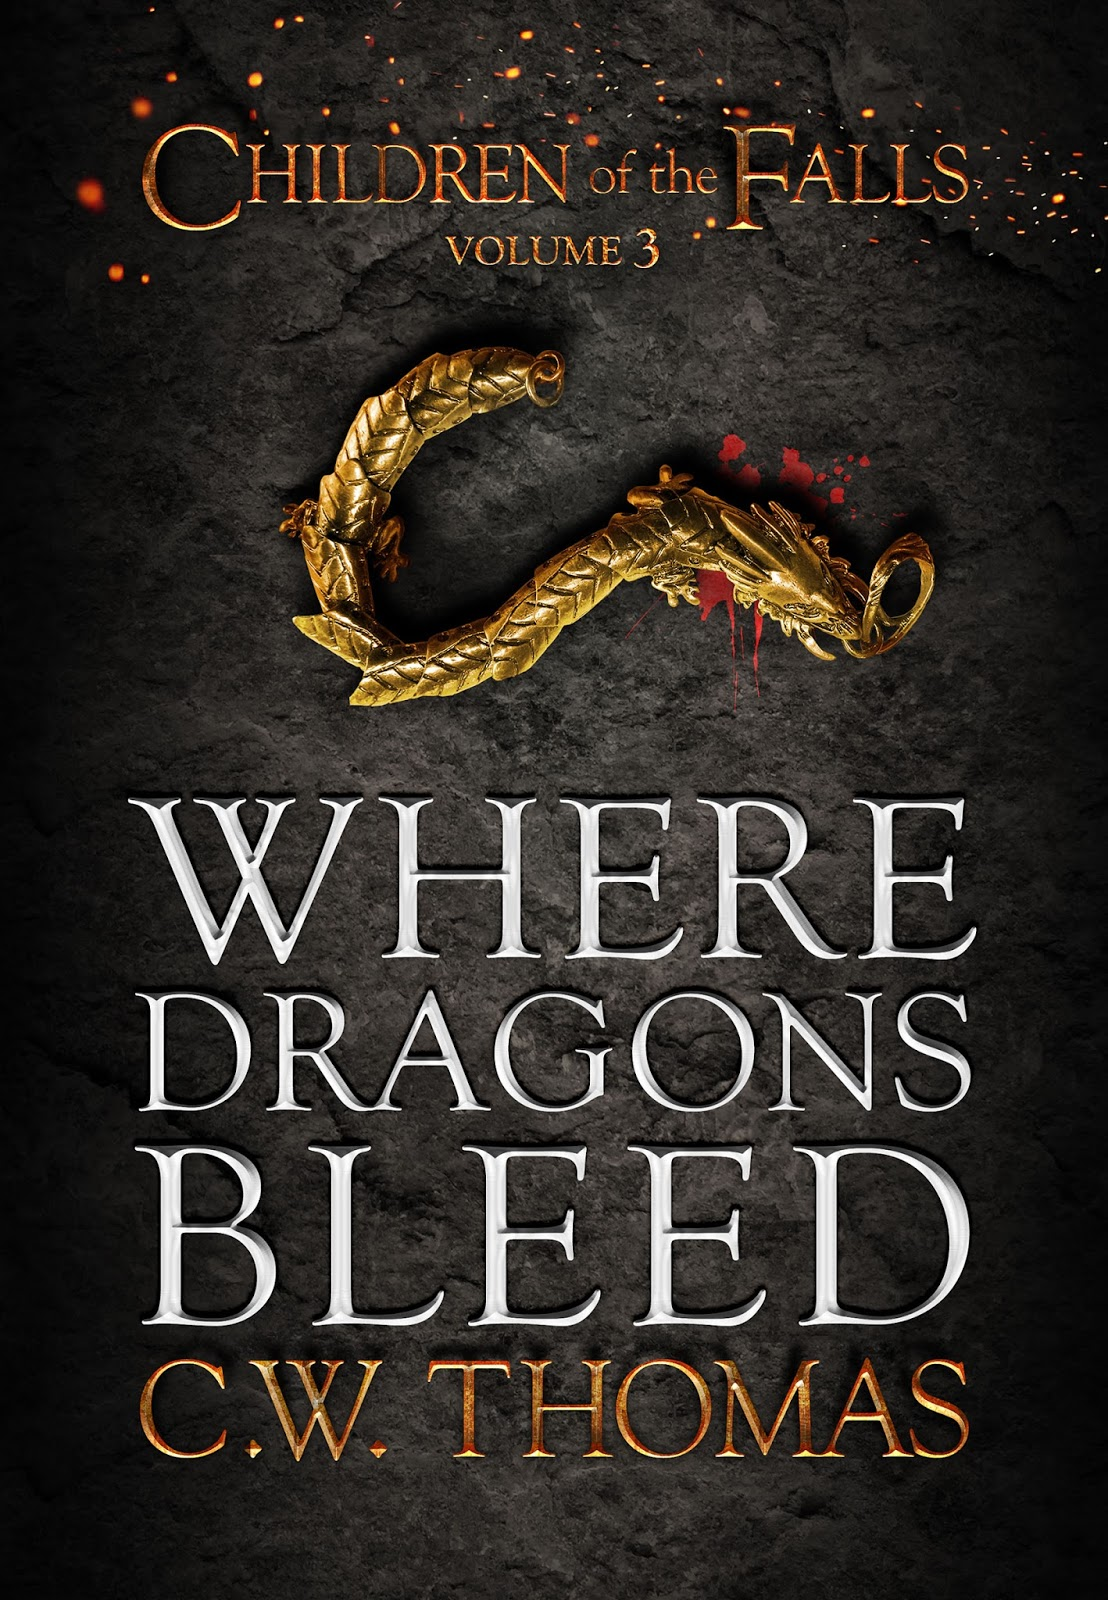 Where Dragons Bleed, by C.W. Thomas